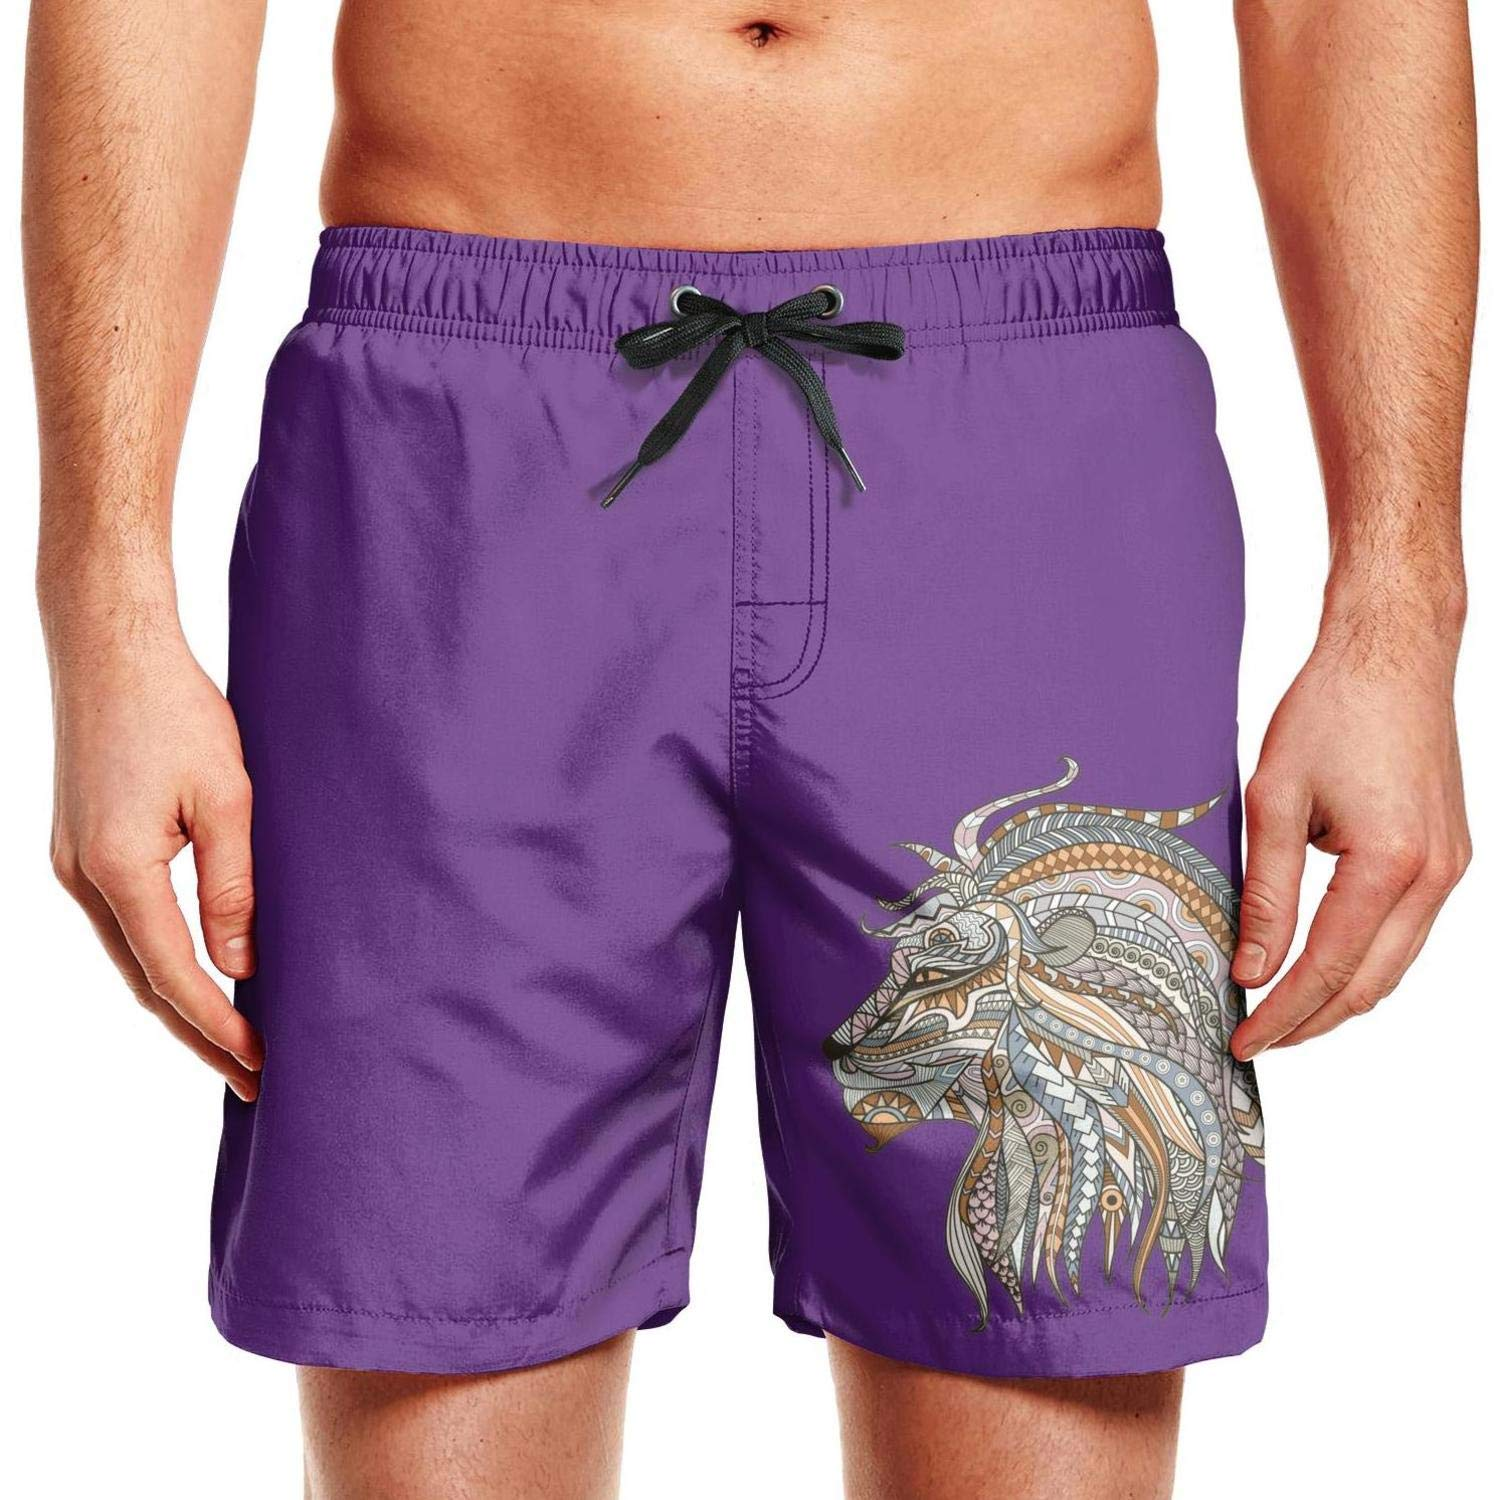 SADAFDS Big Cool Lion Painting Mens Swimming Trunks Ruched Printed Workout Shorts